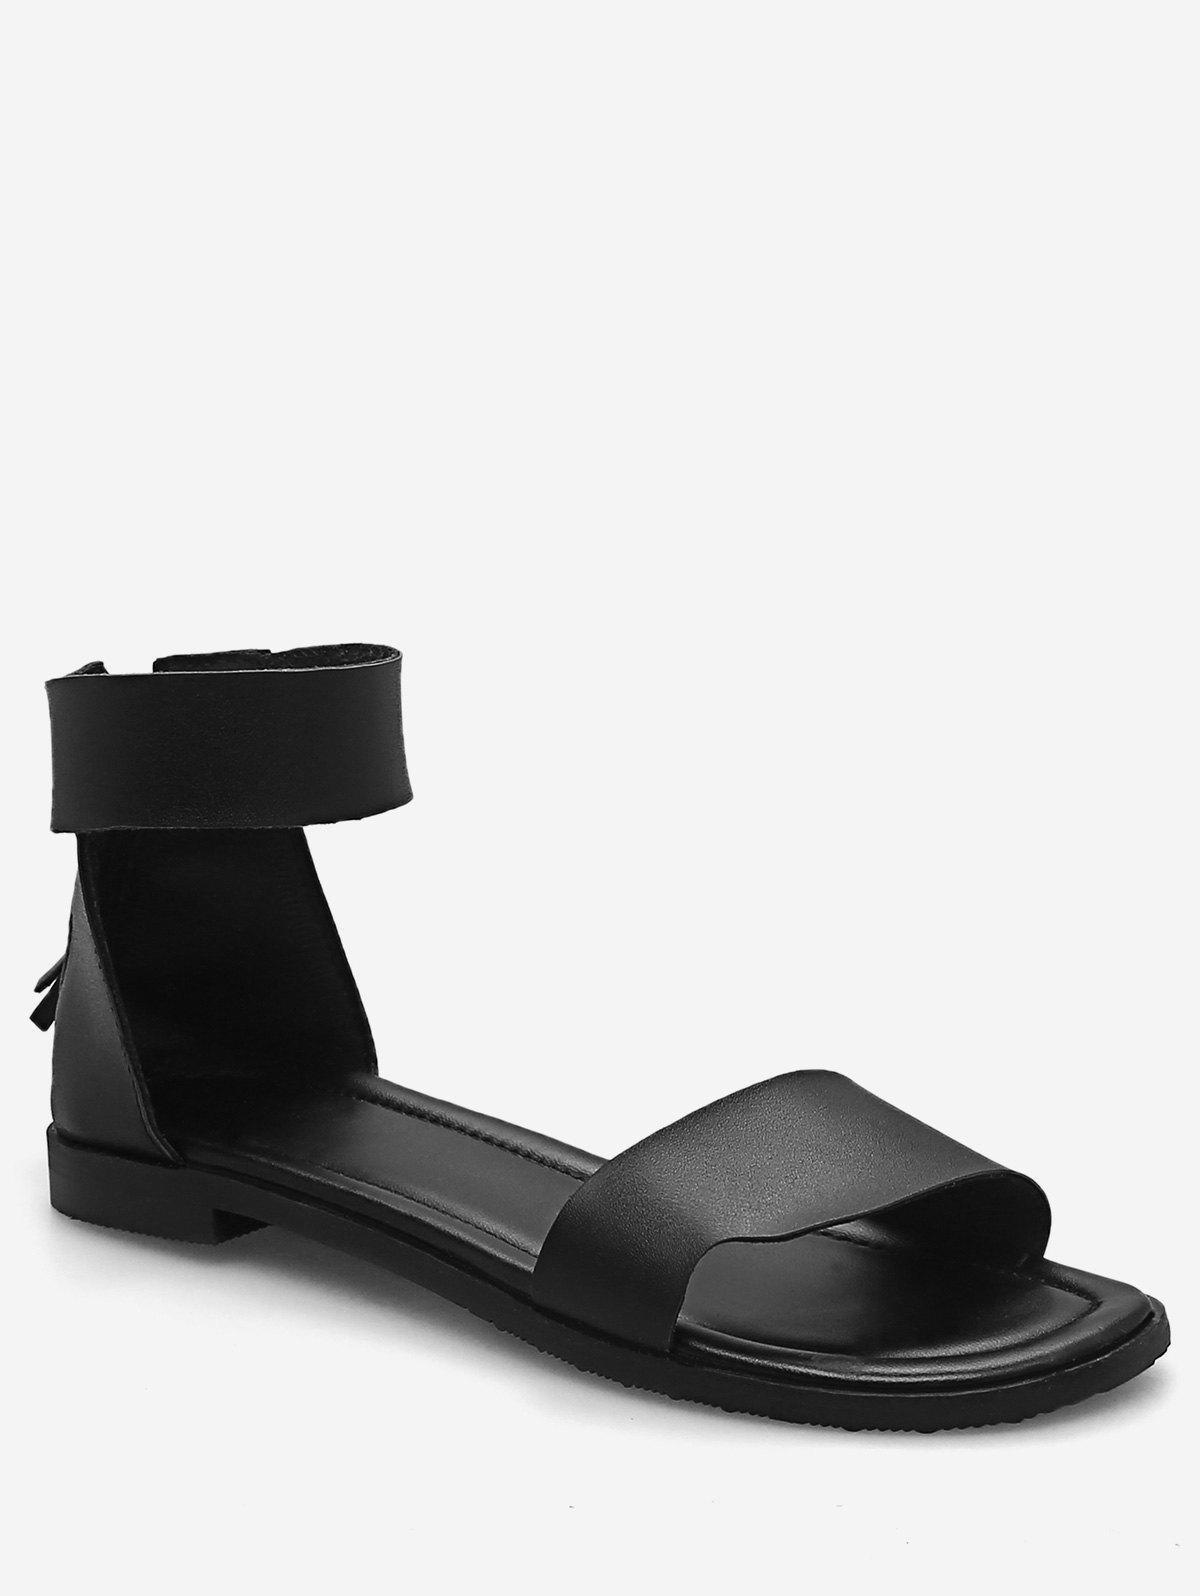 Plus Size Flat Heel Casual Vacation Sandals - BLACK 42